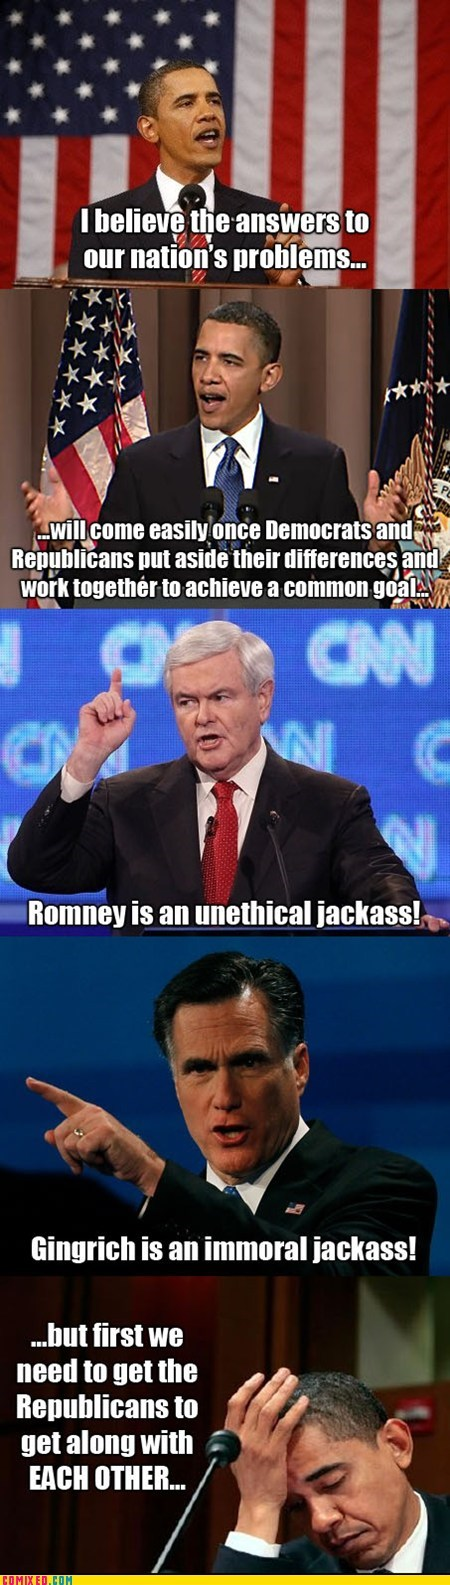 barack obama,comic,democrats,Hall of Fame,Mitt Romney,newt gingrich,political pictures,Republicans